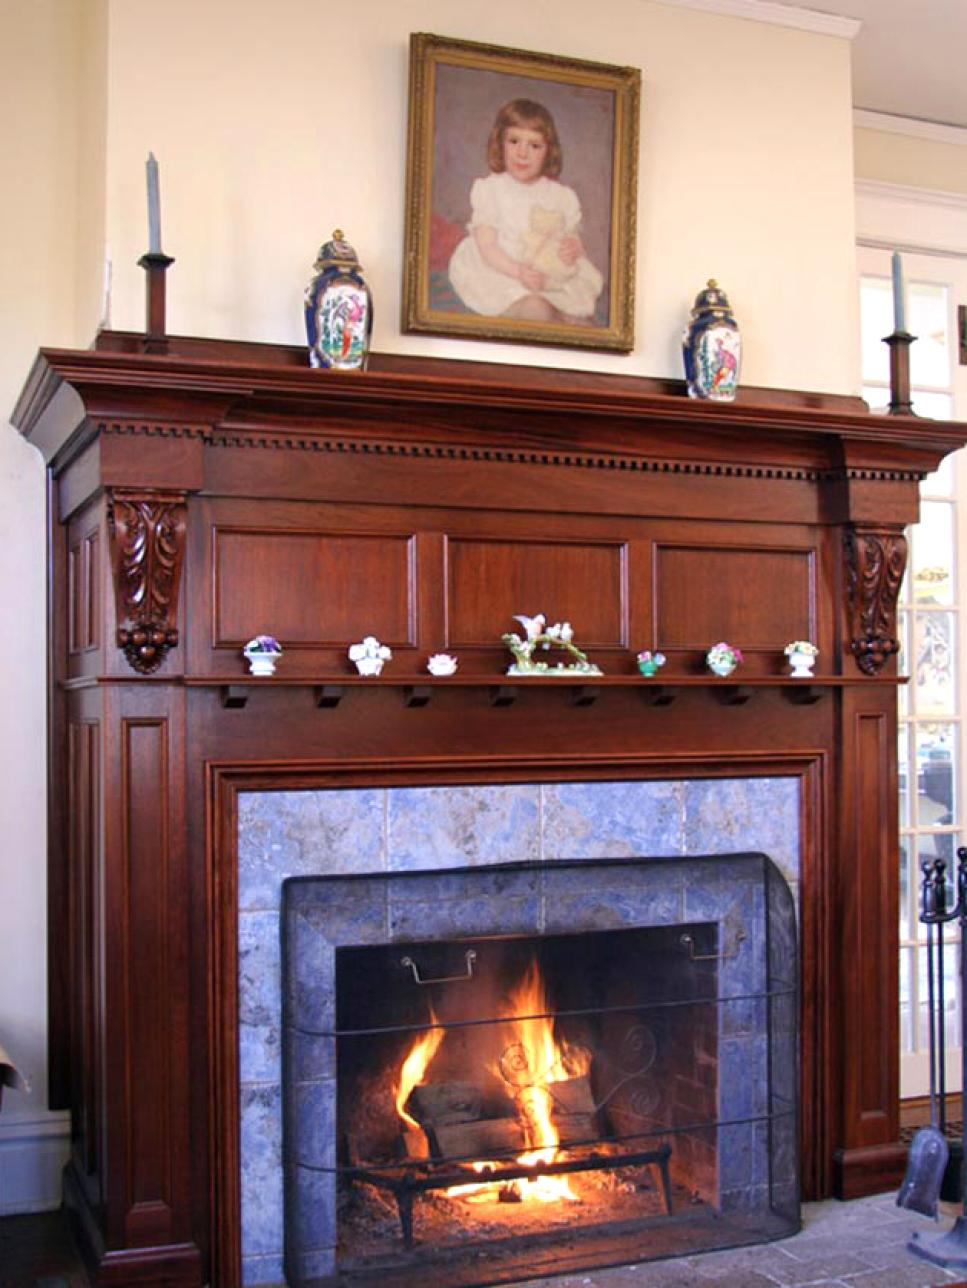 The Familial Hearth HGTV